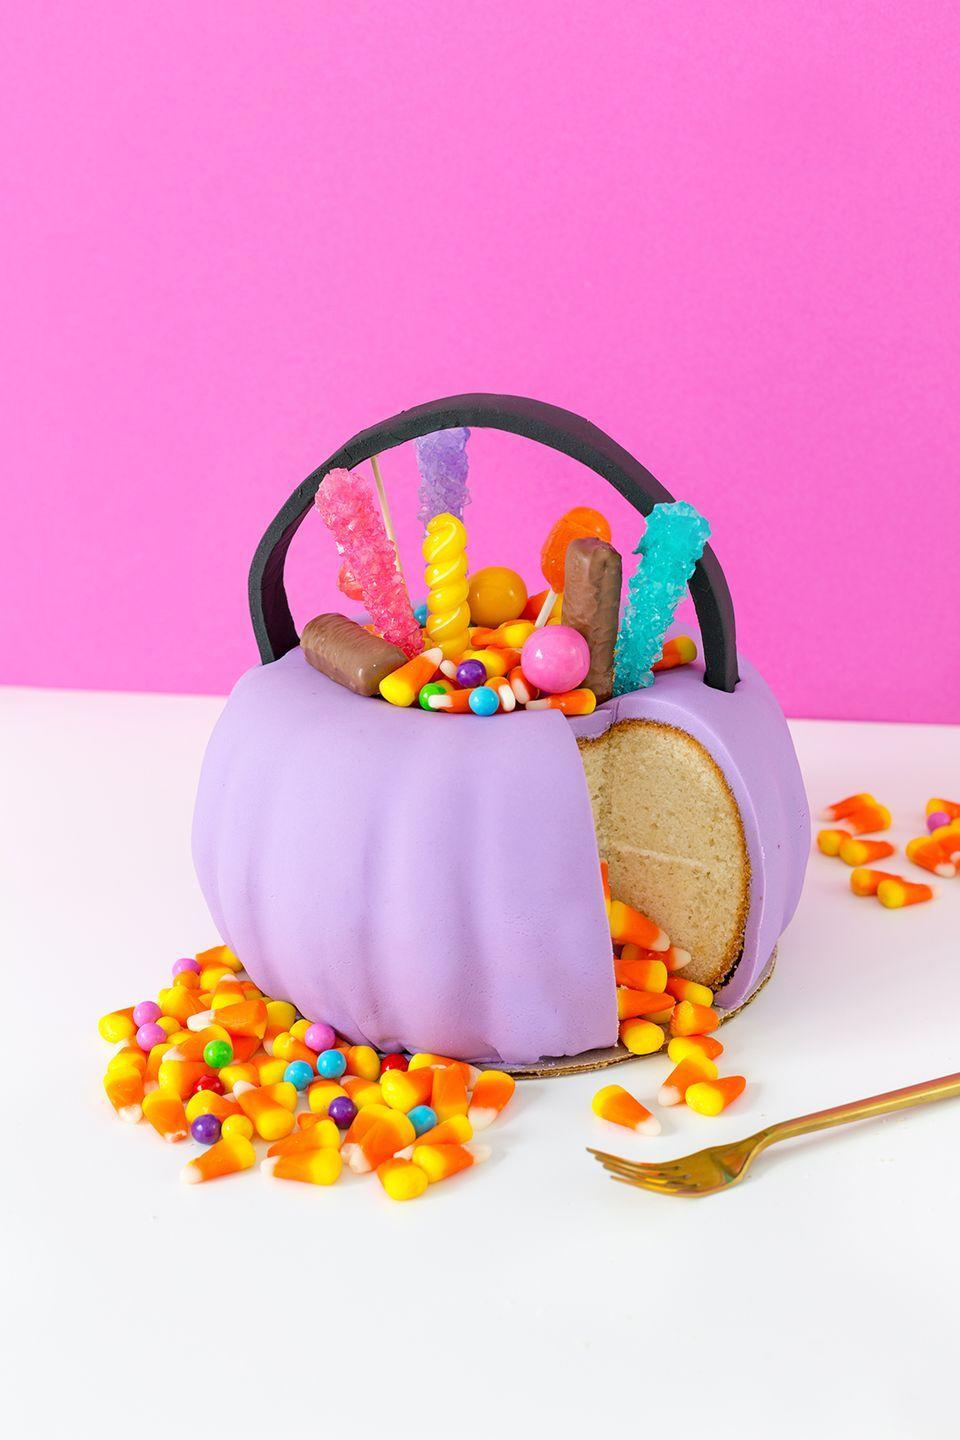 """<p>Kids will definitely approve of this colorful candy-filled snack.</p><p><strong>Get the recipe at <a href=""""http://www.awwsam.com/2017/10/halloween-pumpkin-candy-pail-cake.html"""" rel=""""nofollow noopener"""" target=""""_blank"""" data-ylk=""""slk:Aww Sam"""" class=""""link rapid-noclick-resp"""">Aww Sam</a>.</strong> </p>"""